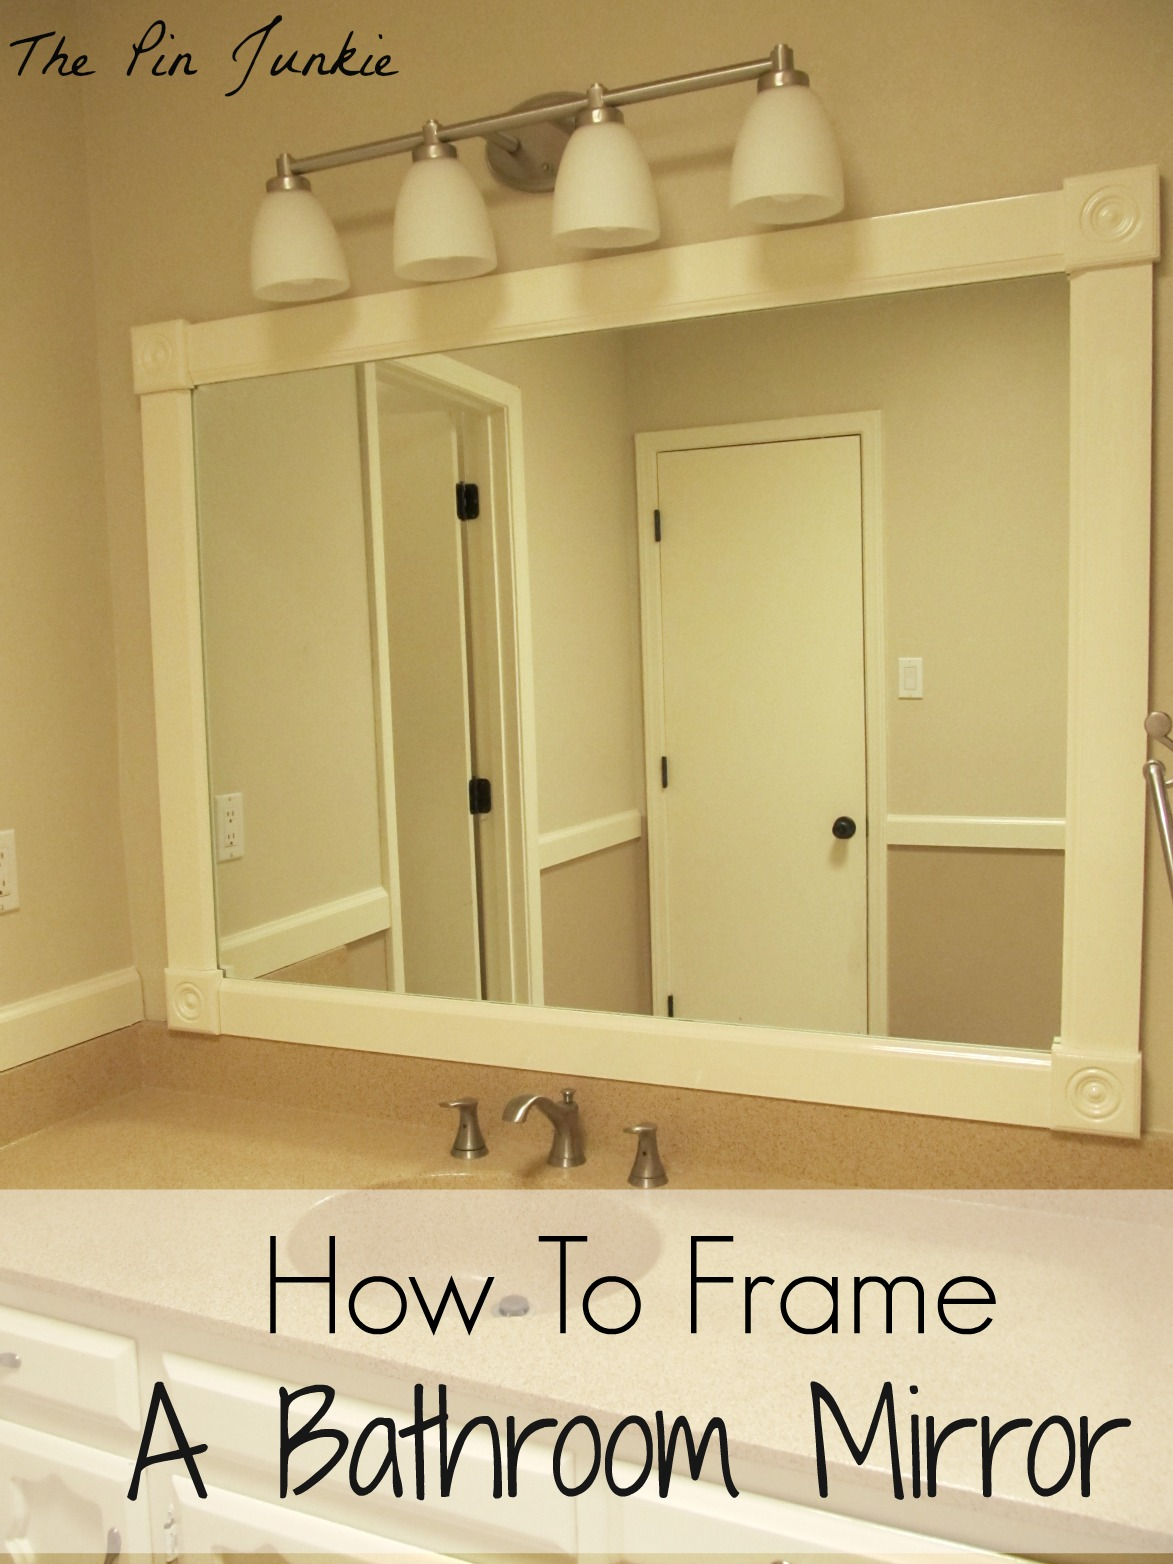 How To Frame Pictures How To Frame A Bathroom Mirror